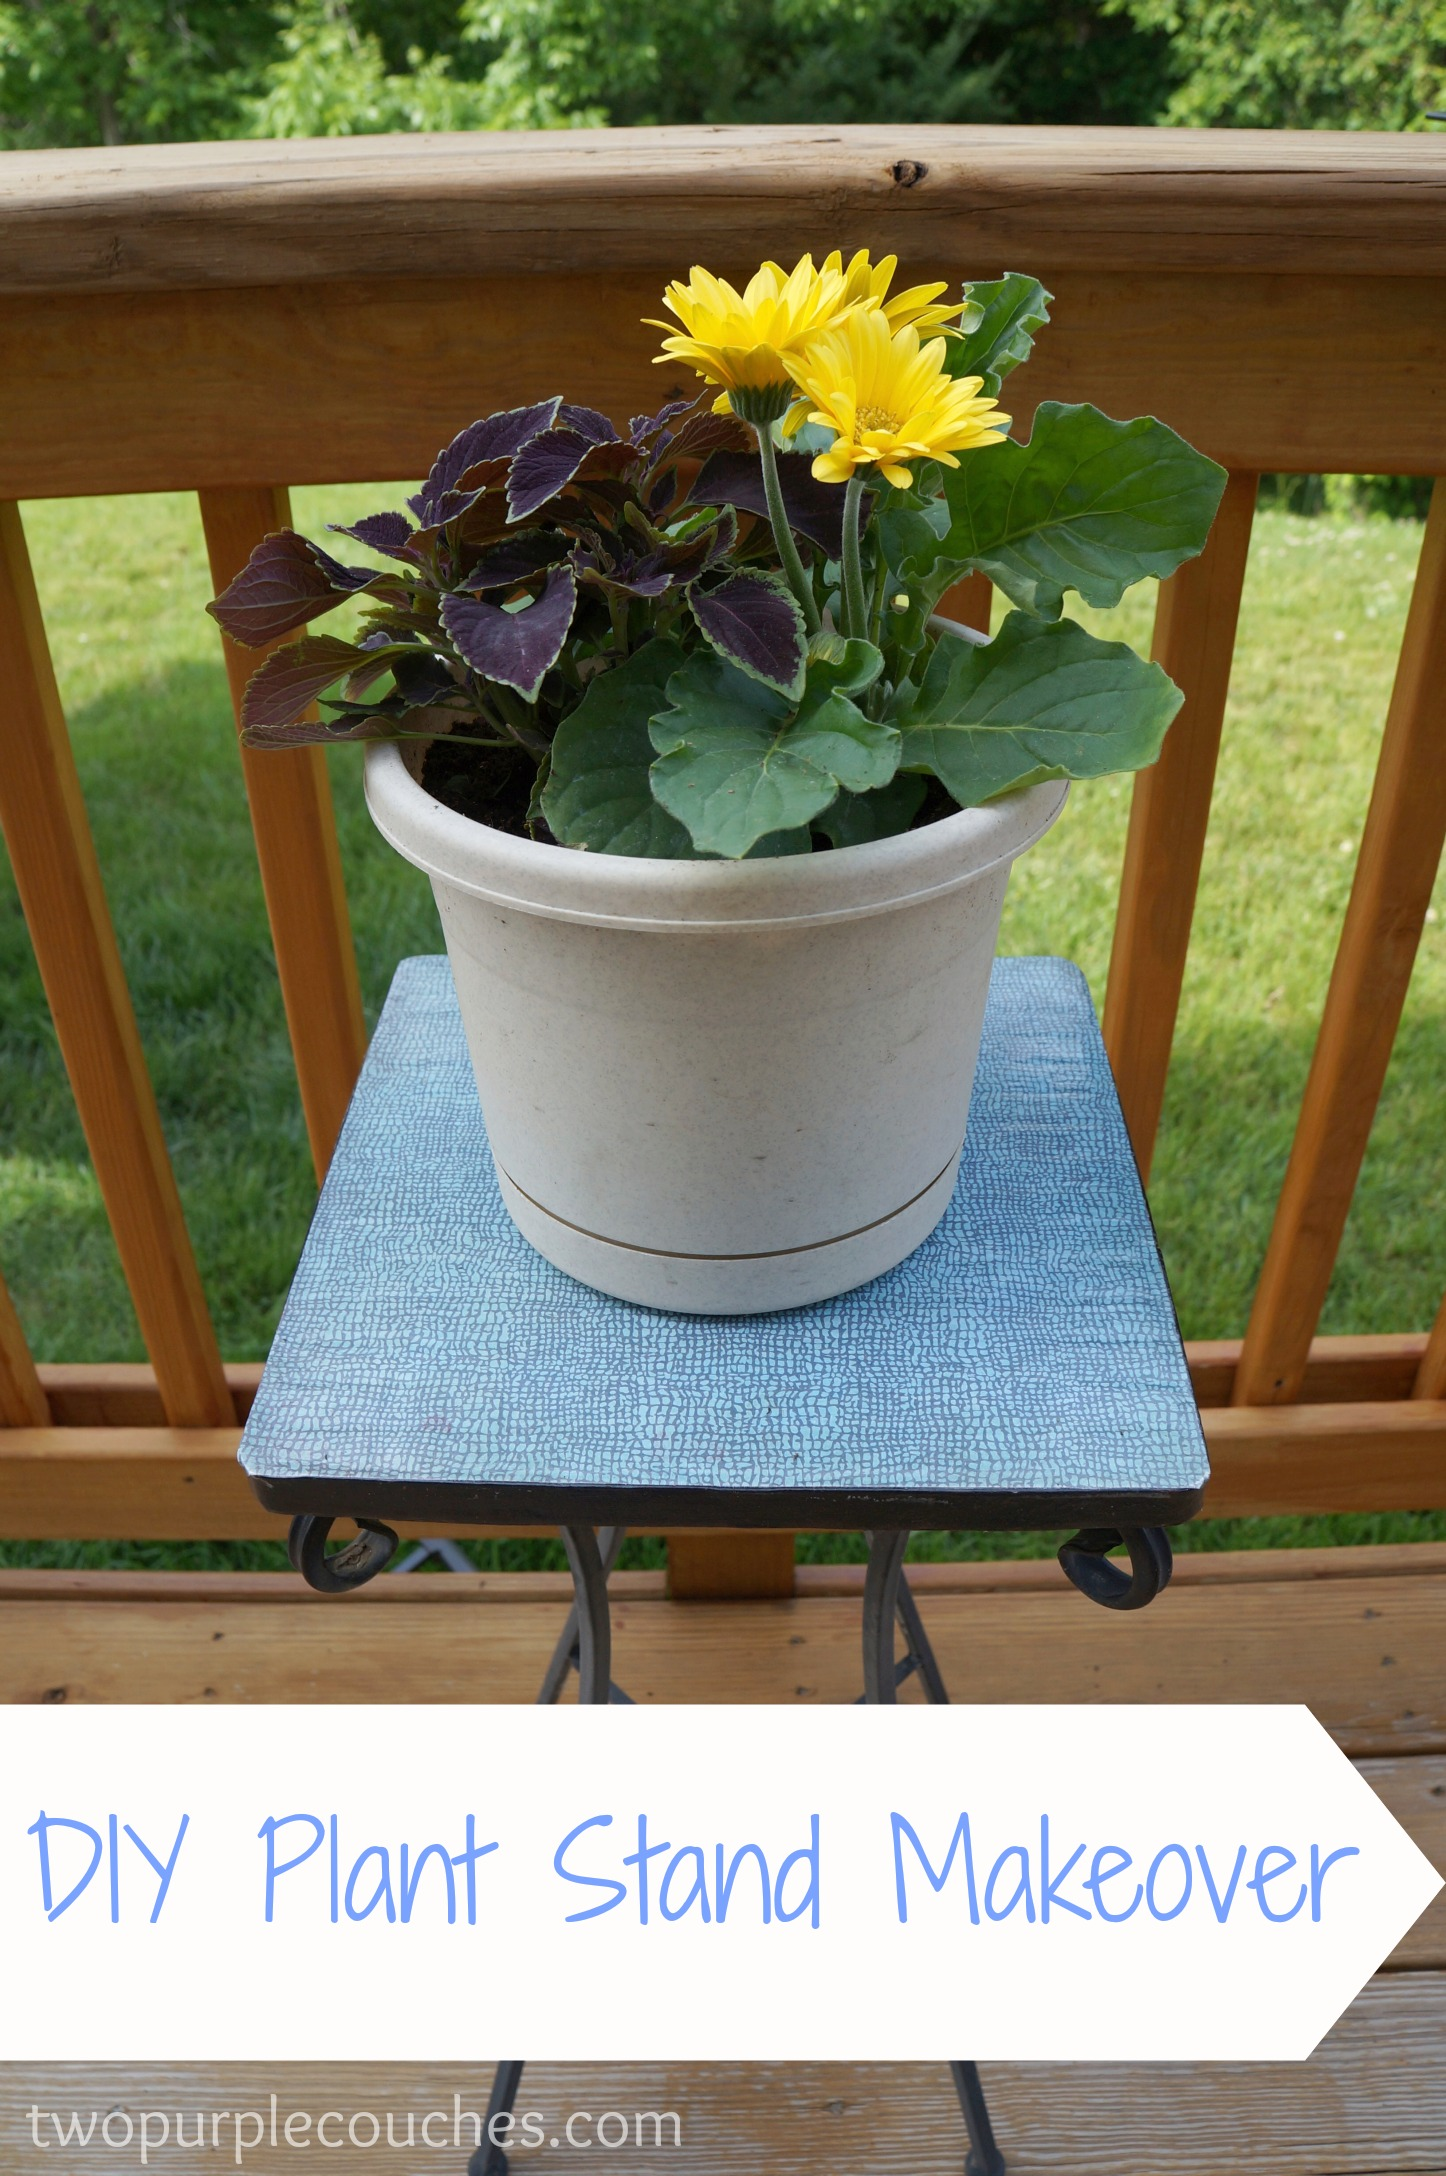 DIY Plant Stand Makeover - two purple couches on House Plant Stand Ideas  id=76178